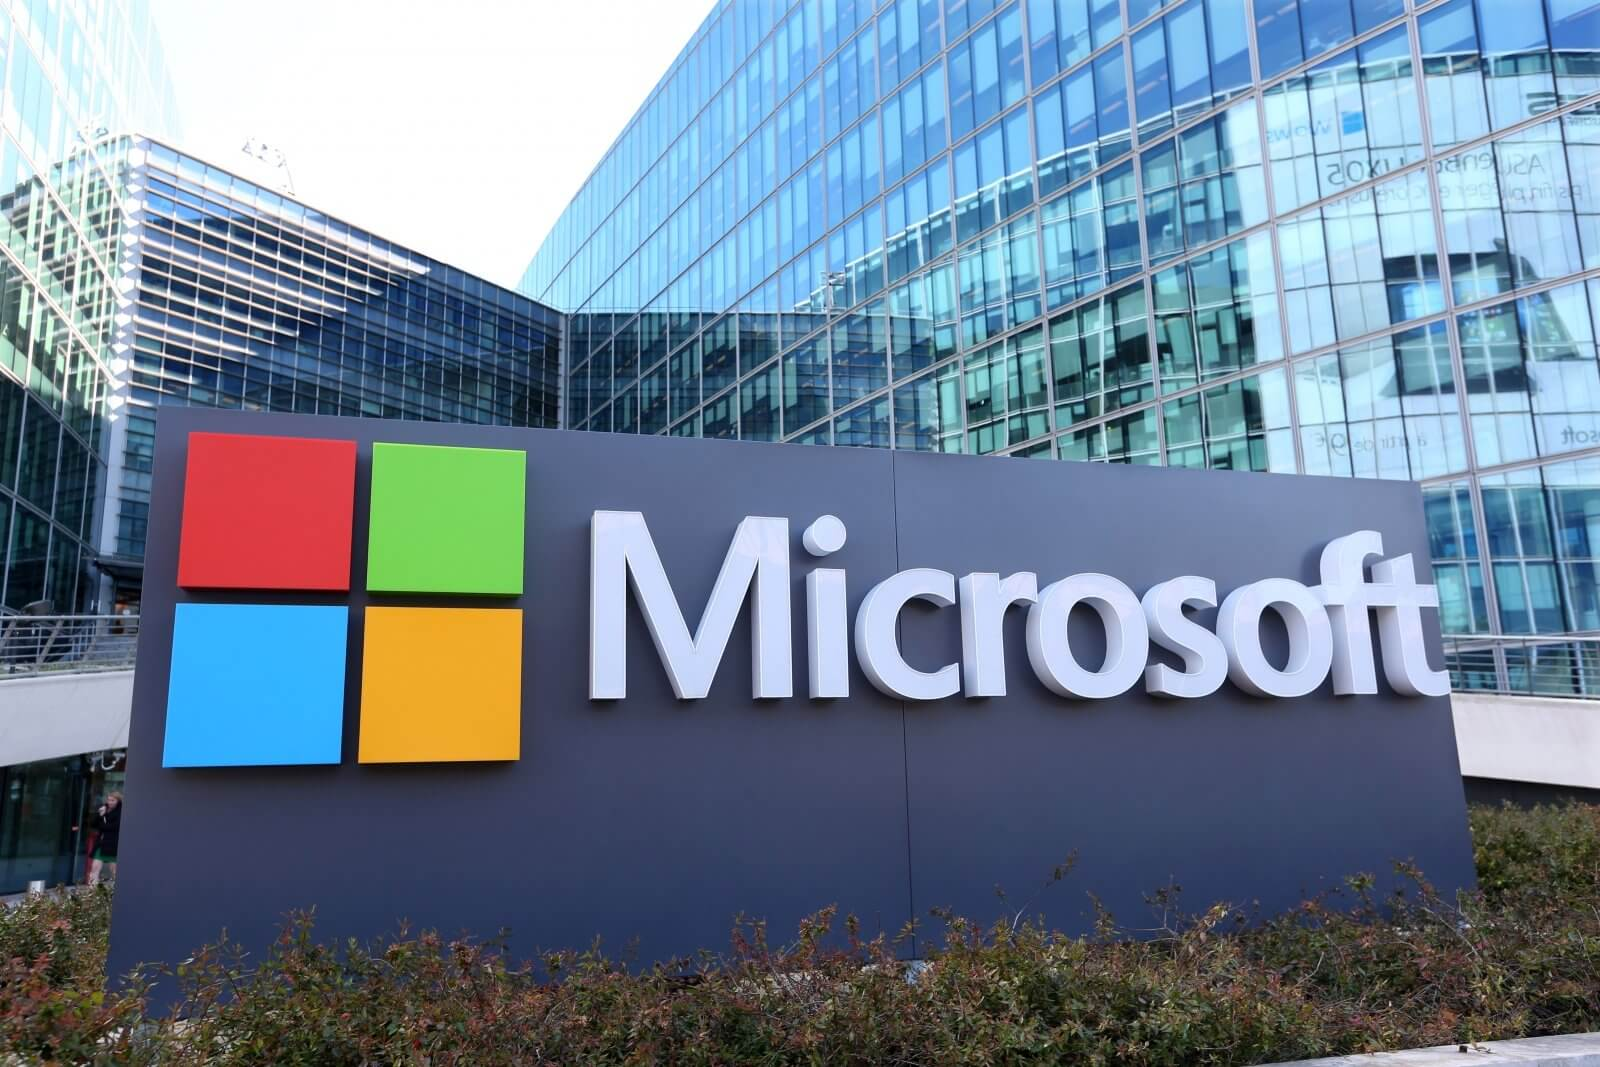 Microsoft affirms joint venture partners will retain their own intellectual property